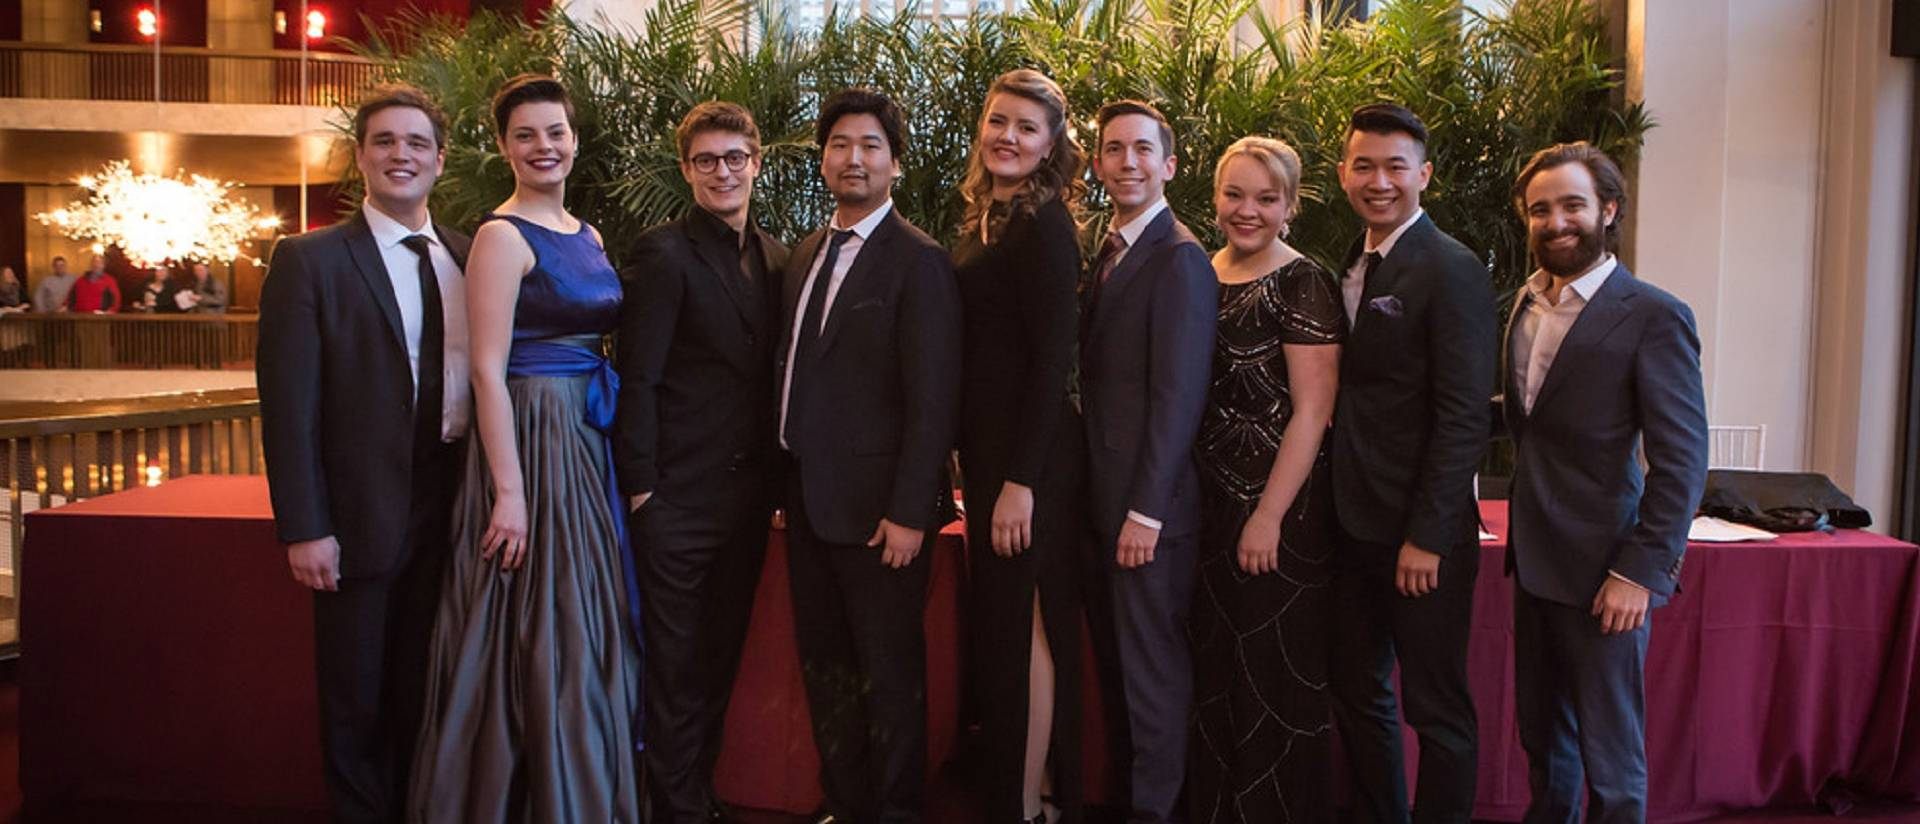 2016 Metropolitan Opera National Council Audition grand finalists